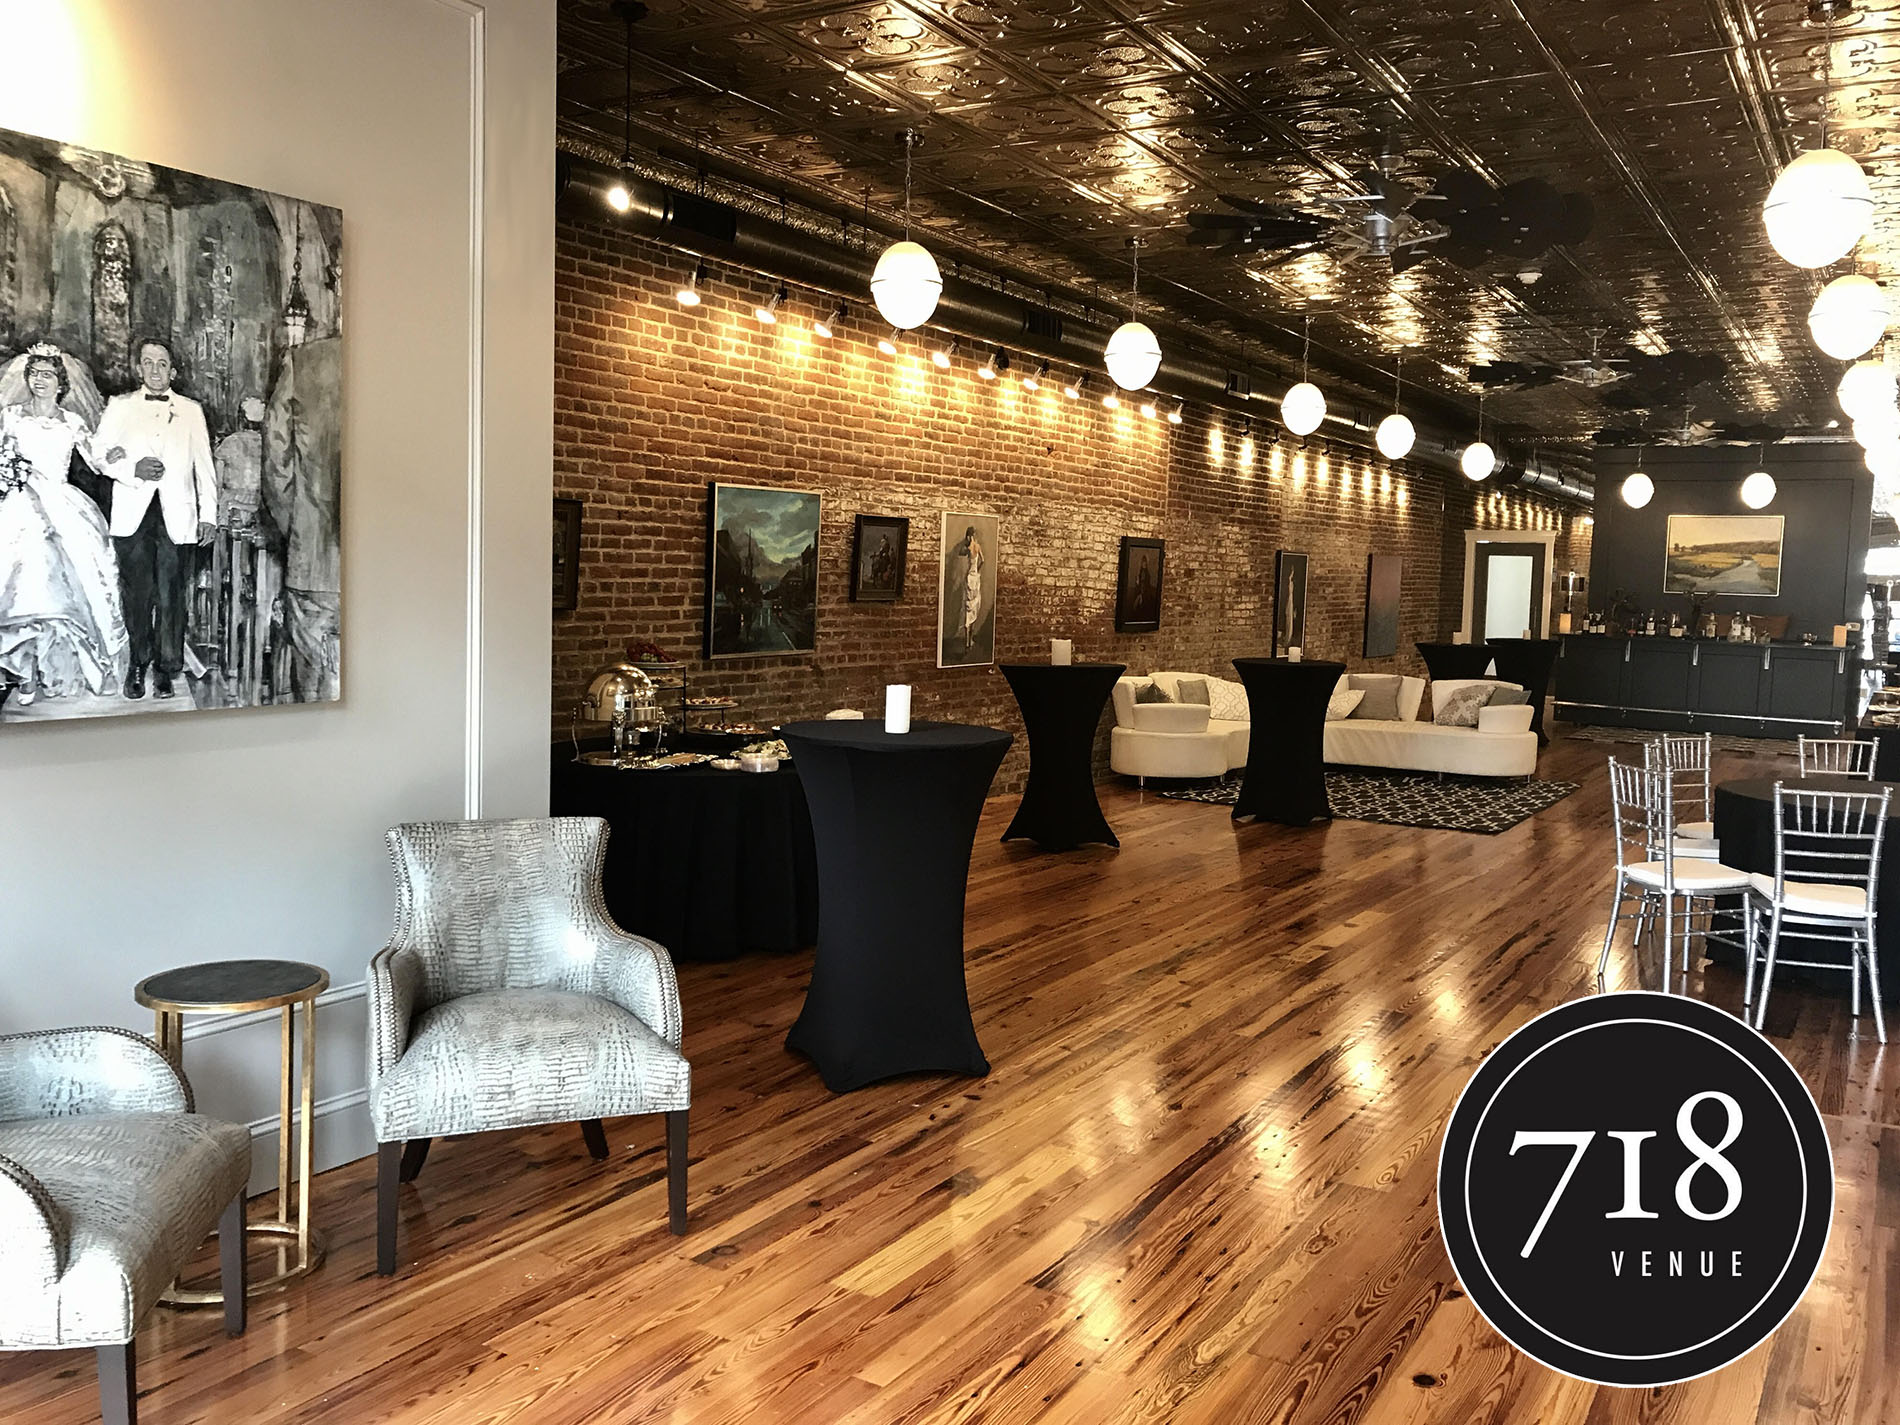 FredToday Partners: Plan your holiday party at 718